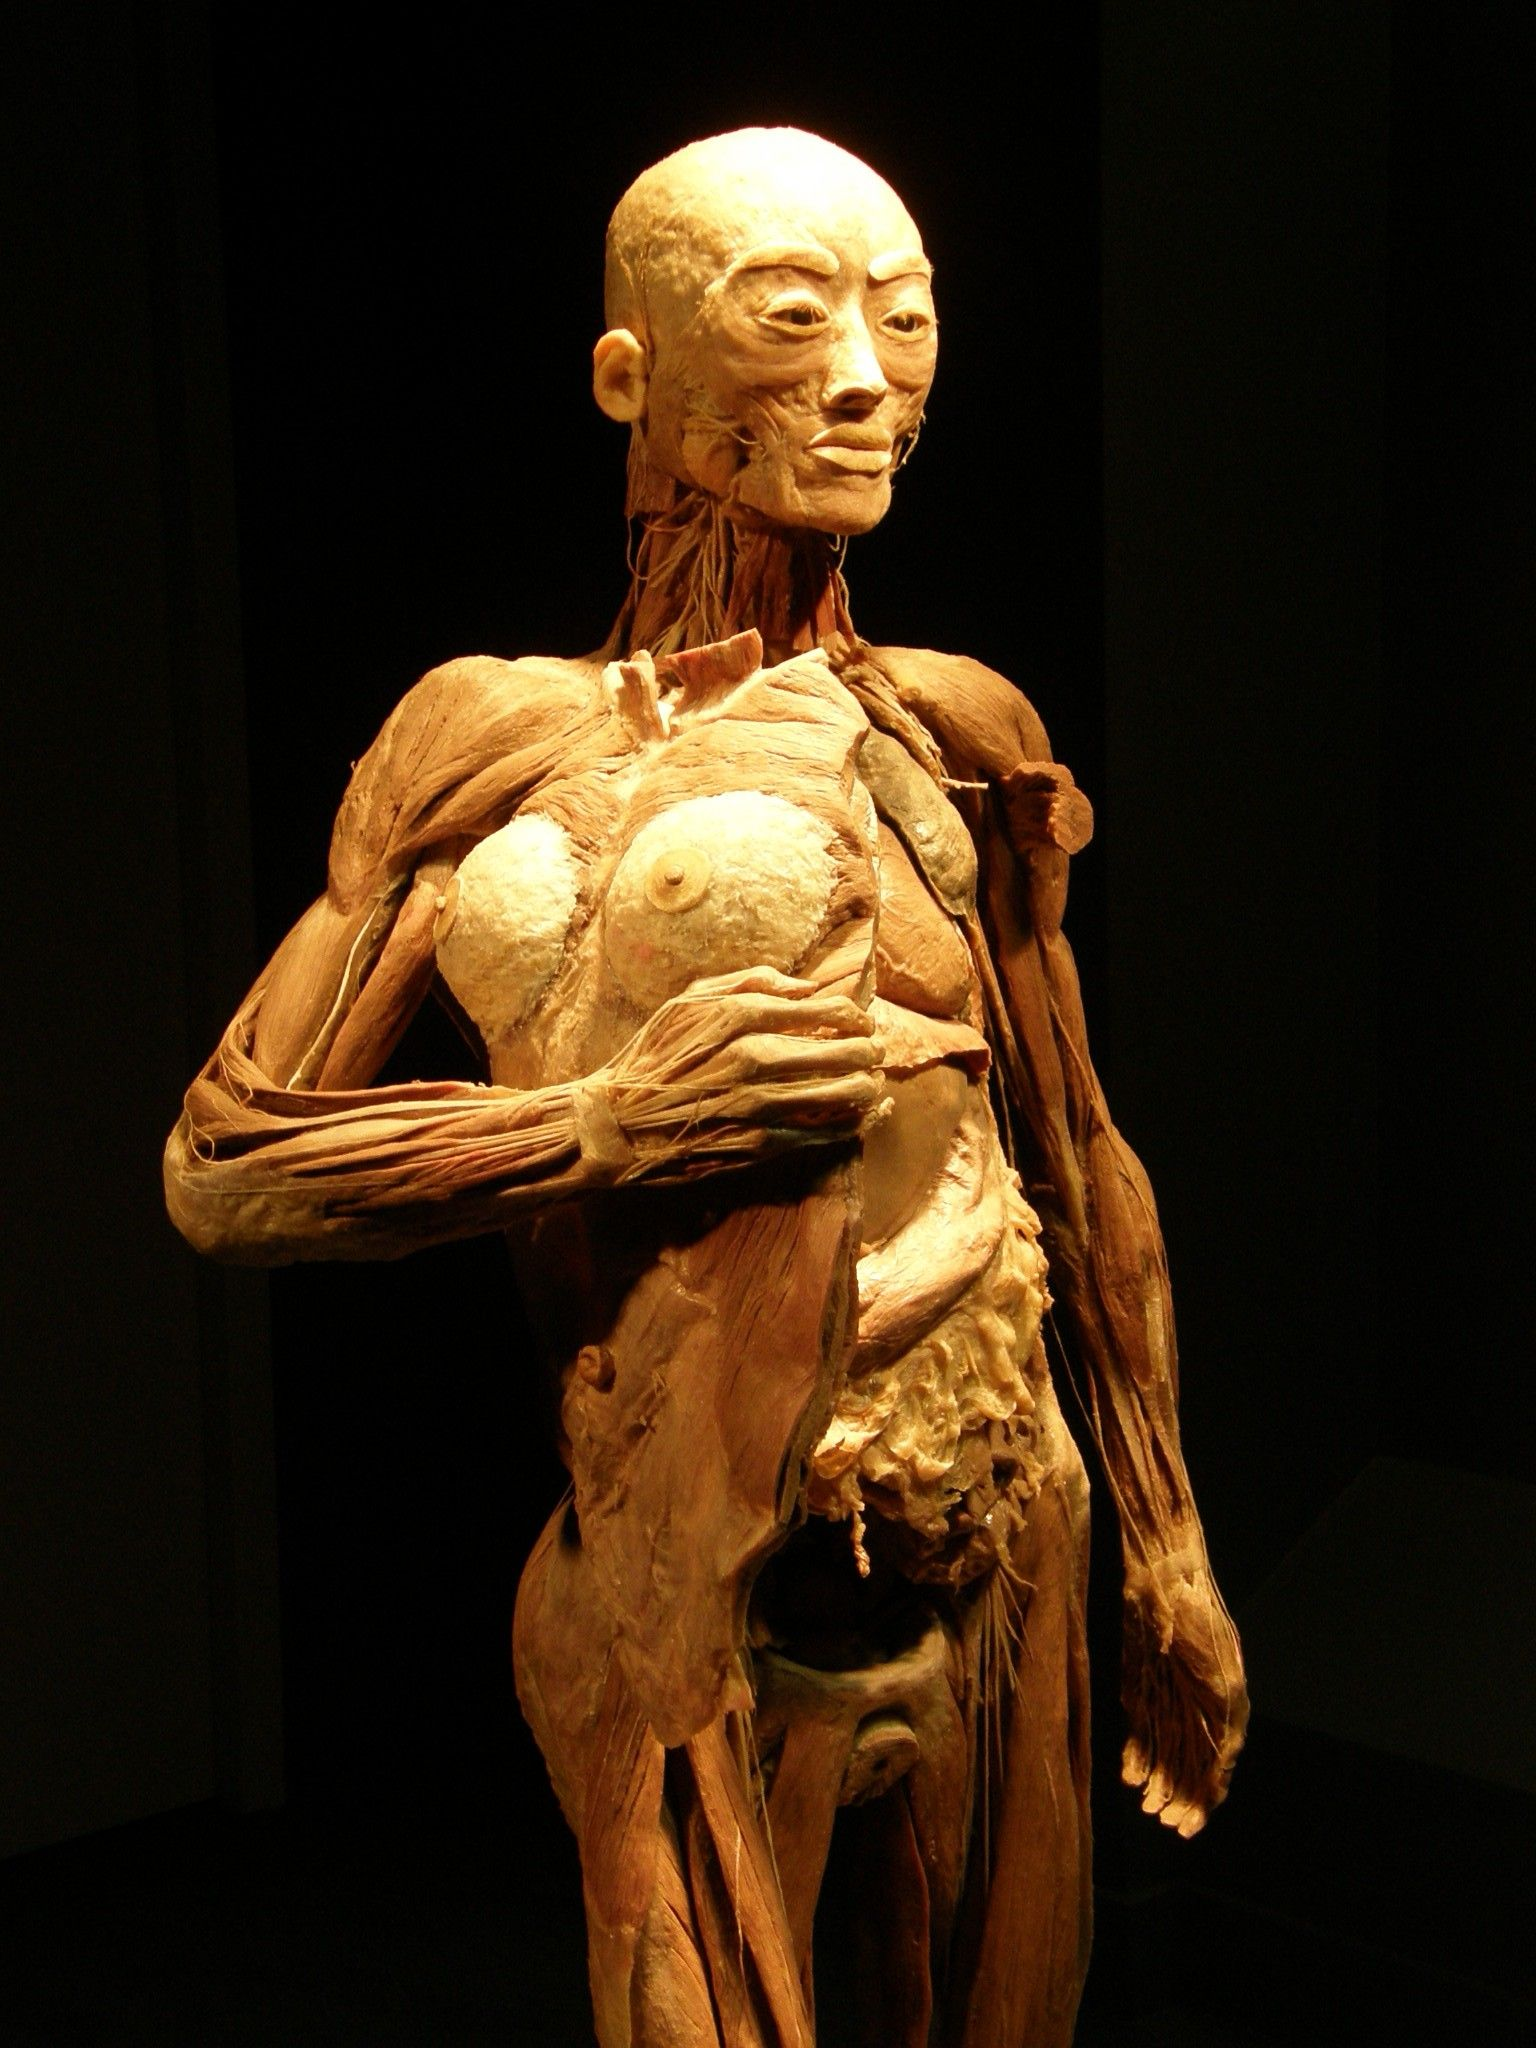 The Intricacies Of The Human Body Using Genuine Human Tissues